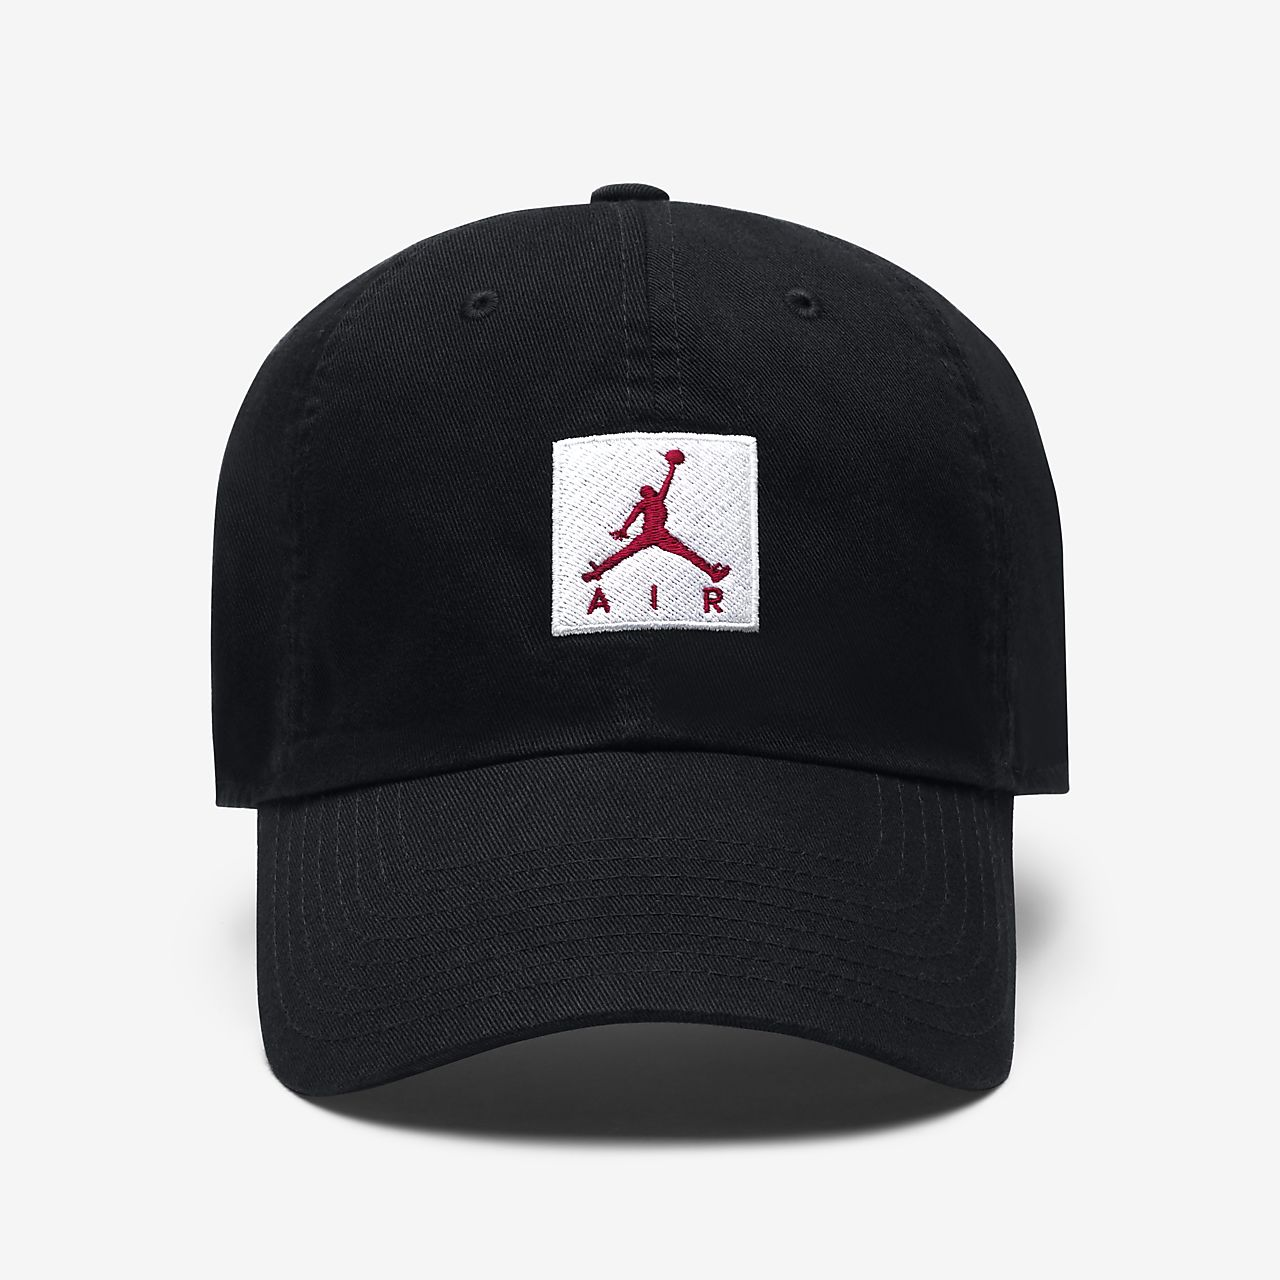 603a98e16bd2b ... discount air jordan jumpman h86 adjustable hat 76012 83ccc